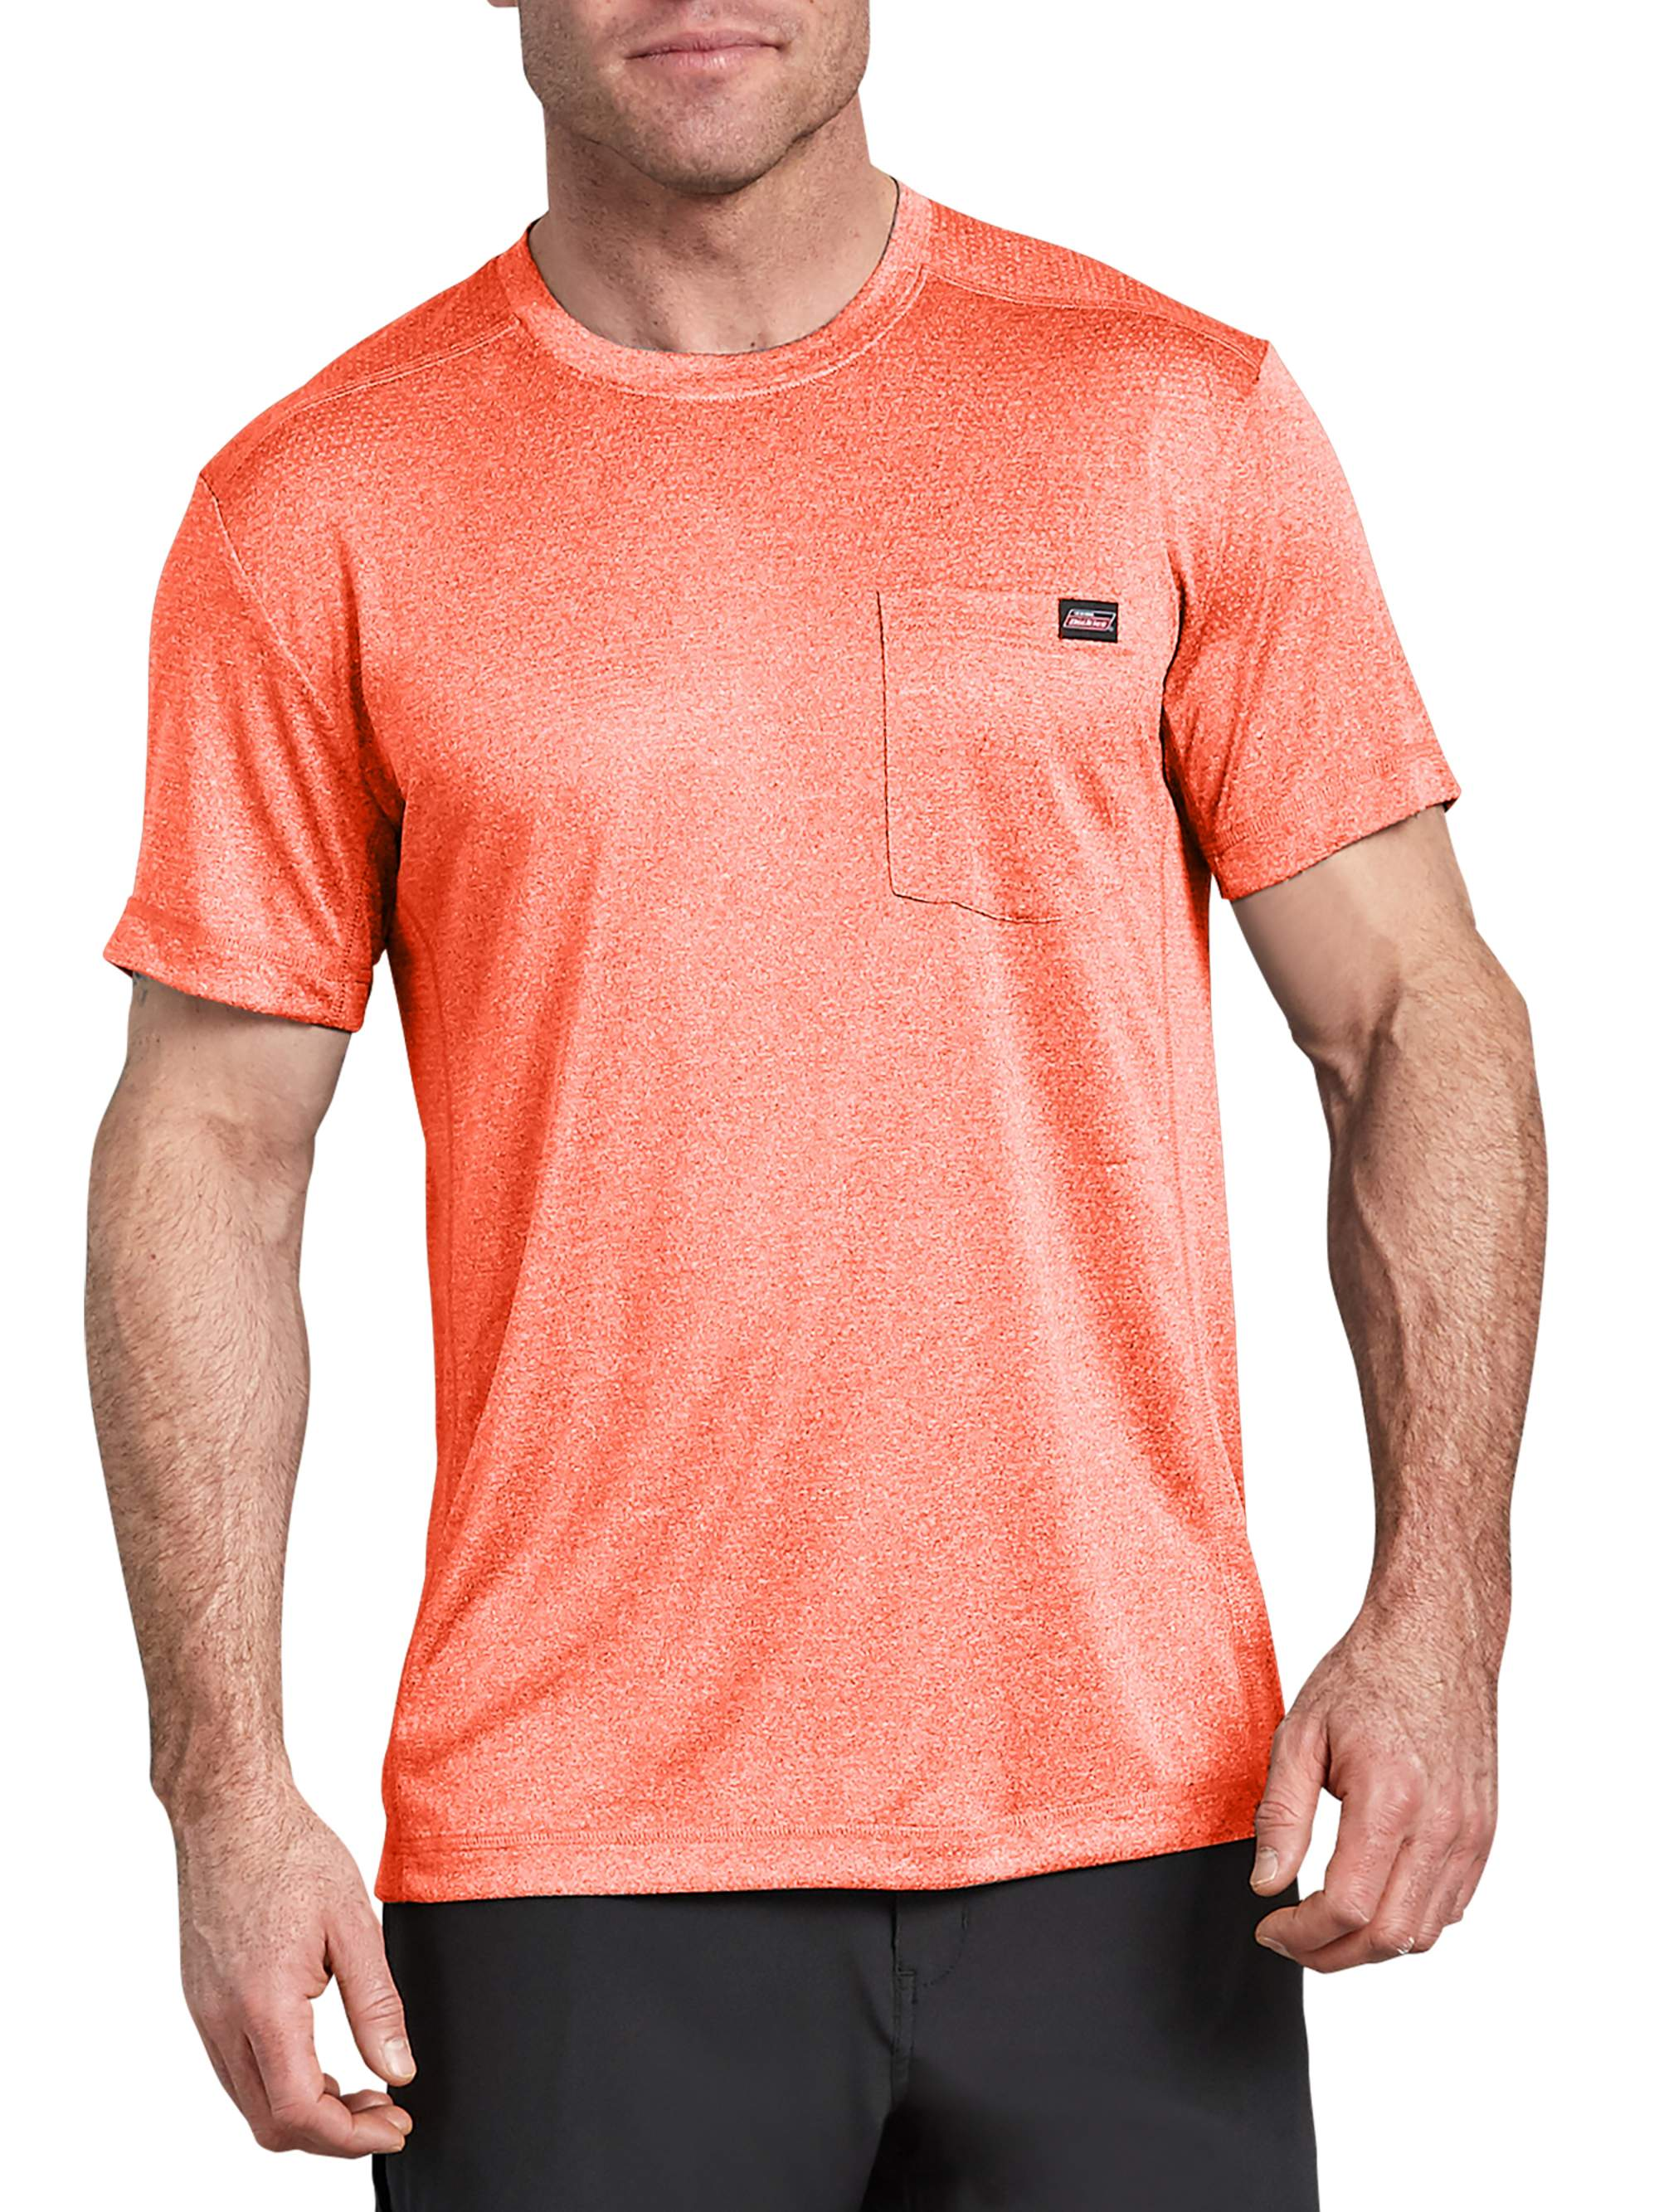 Big Men's Short Sleeve Cooling Tee